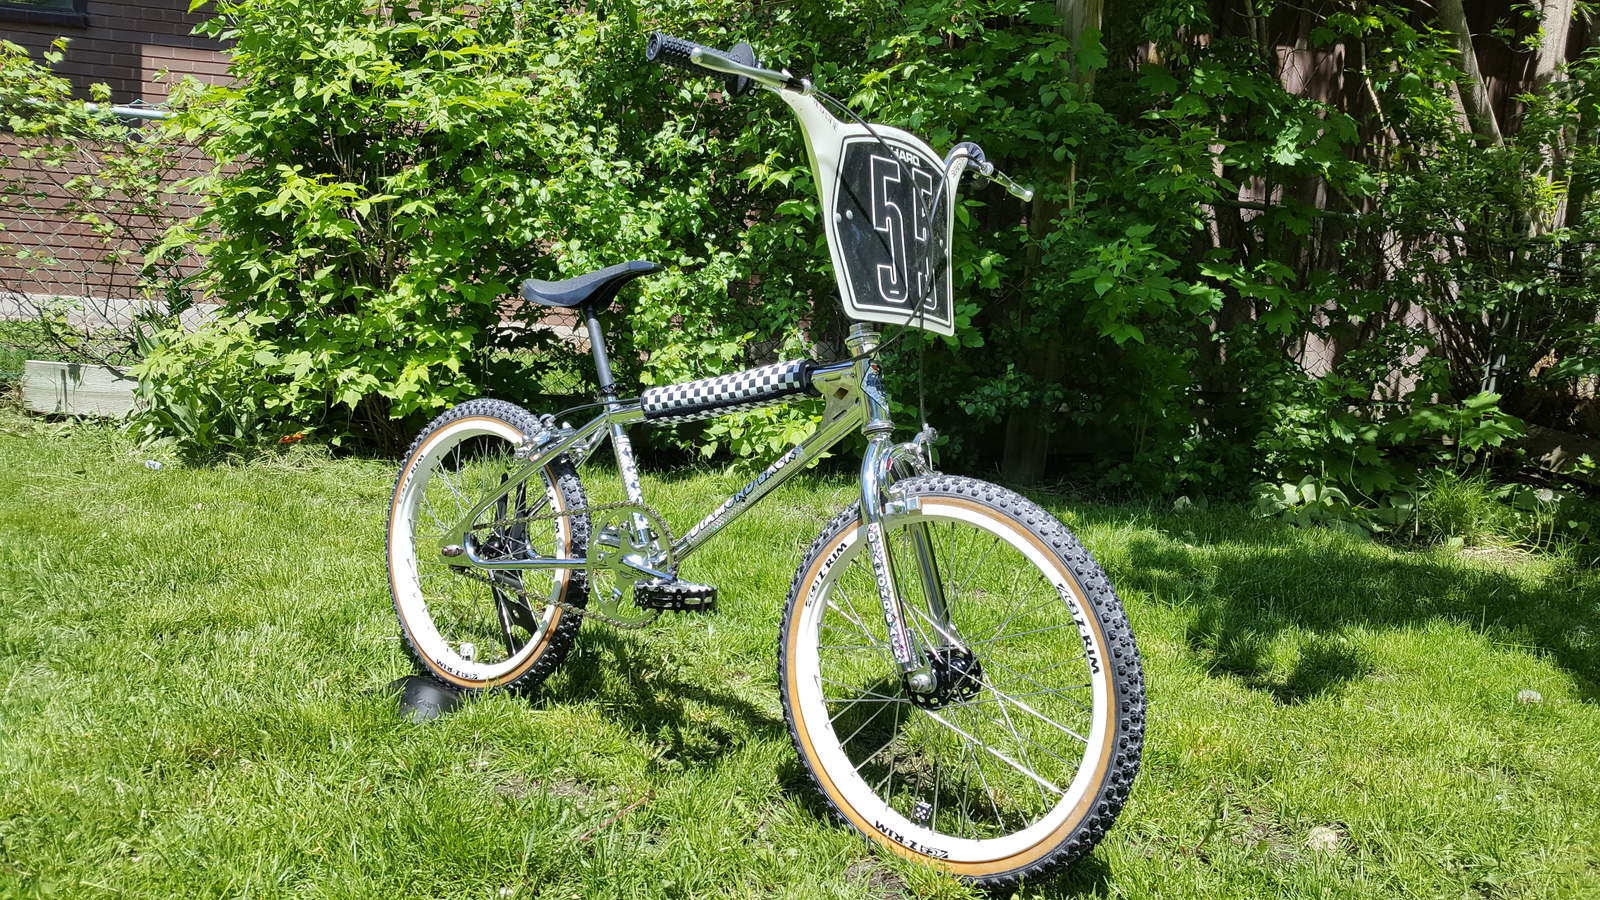 http://uploads.bmxmuseum.com/user-images/210776/20170528_133829_0055a898770a4.jpg